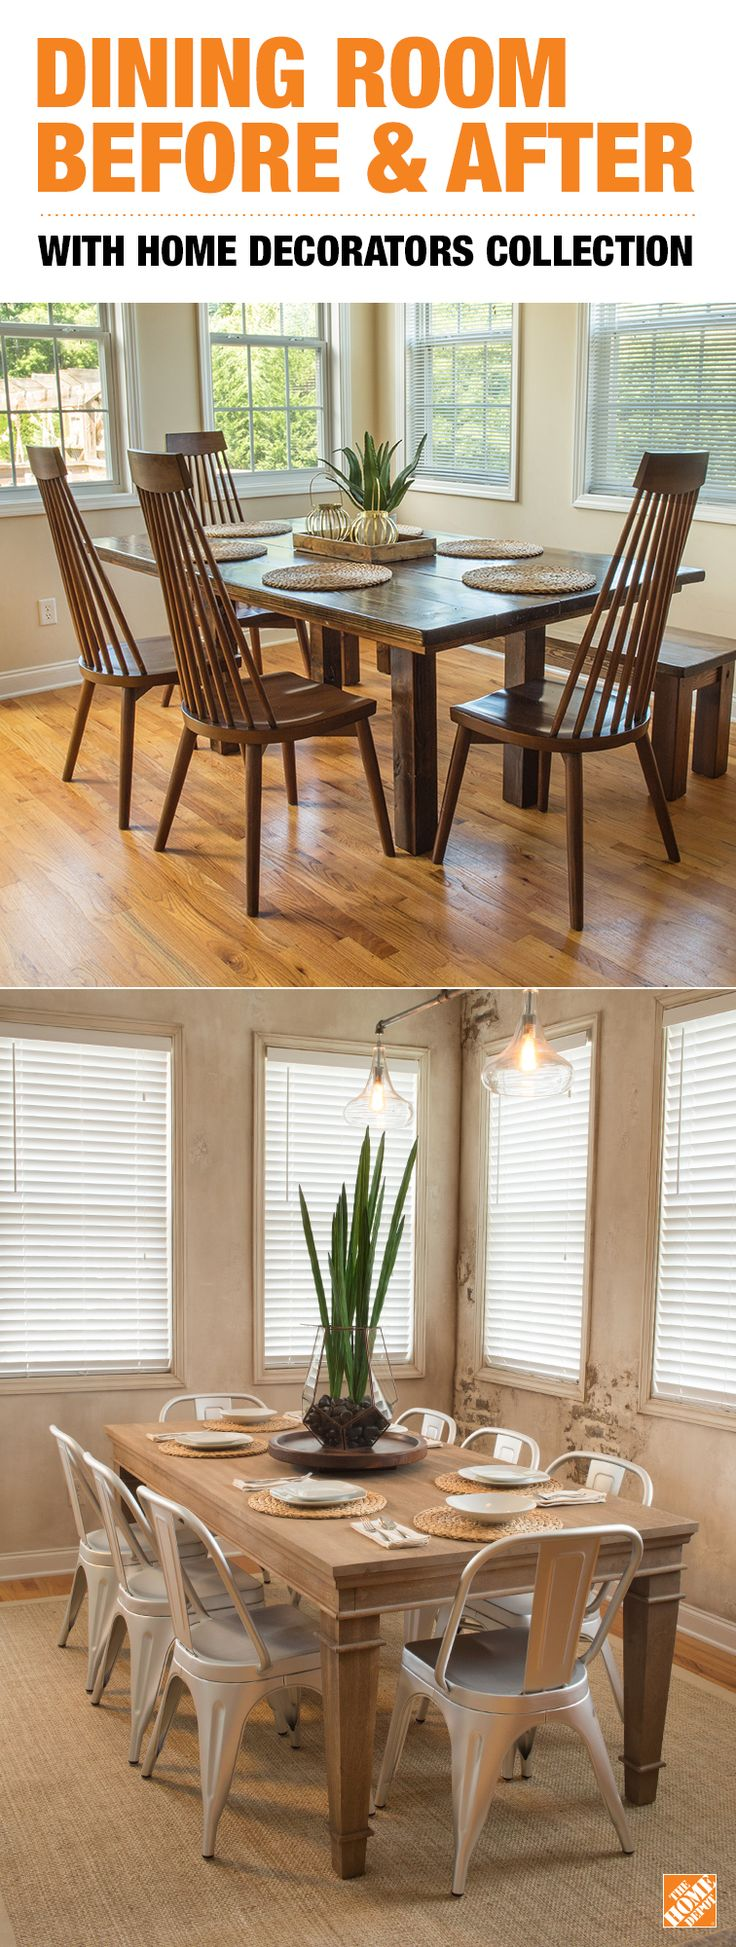 Read How Blogger Anna Liesemeyer Got A Total Dining Room Makeover For A Great Value With